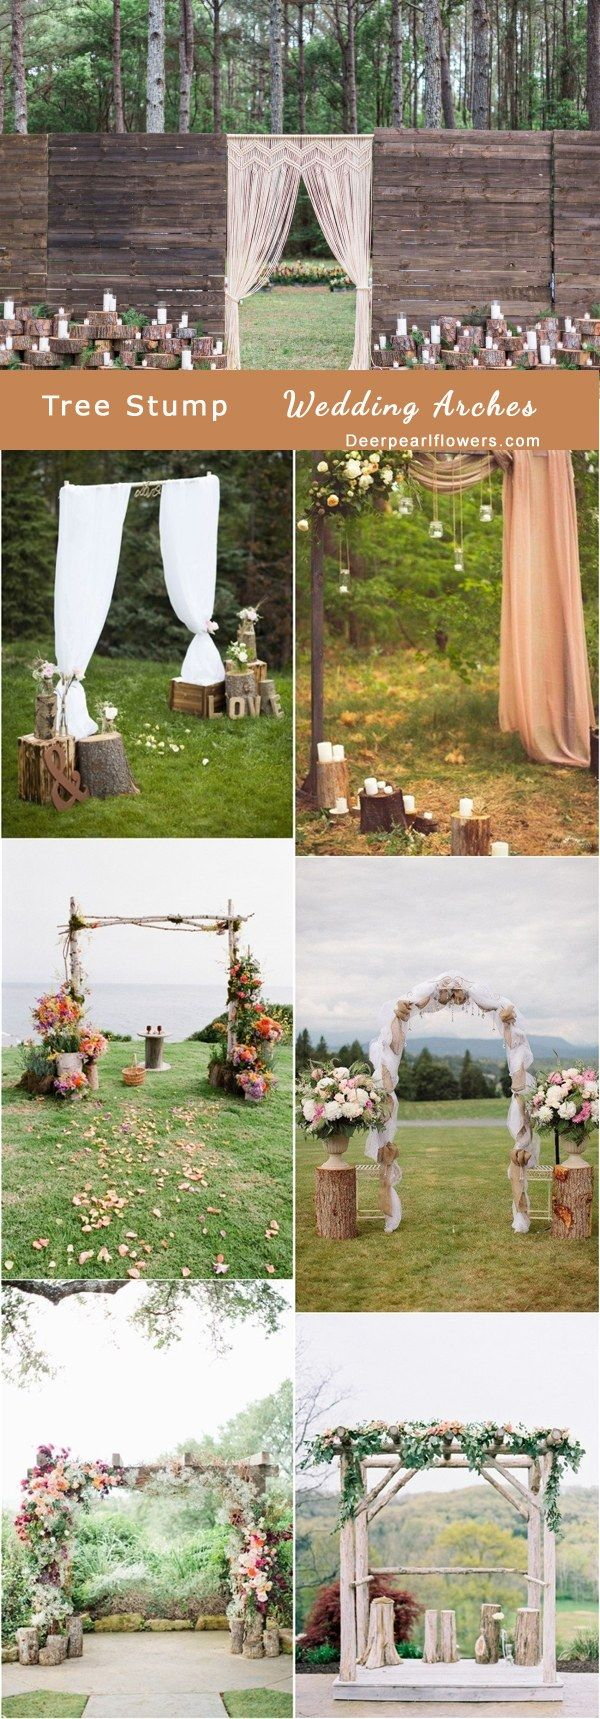 rustic tree stump wedding arch decor ideas / http://www.deerpearlflowers.com/rustic-woodsy-wedding-trend-tree-stump/ #rustic #rusticwedding #countrywedding #weddingideas